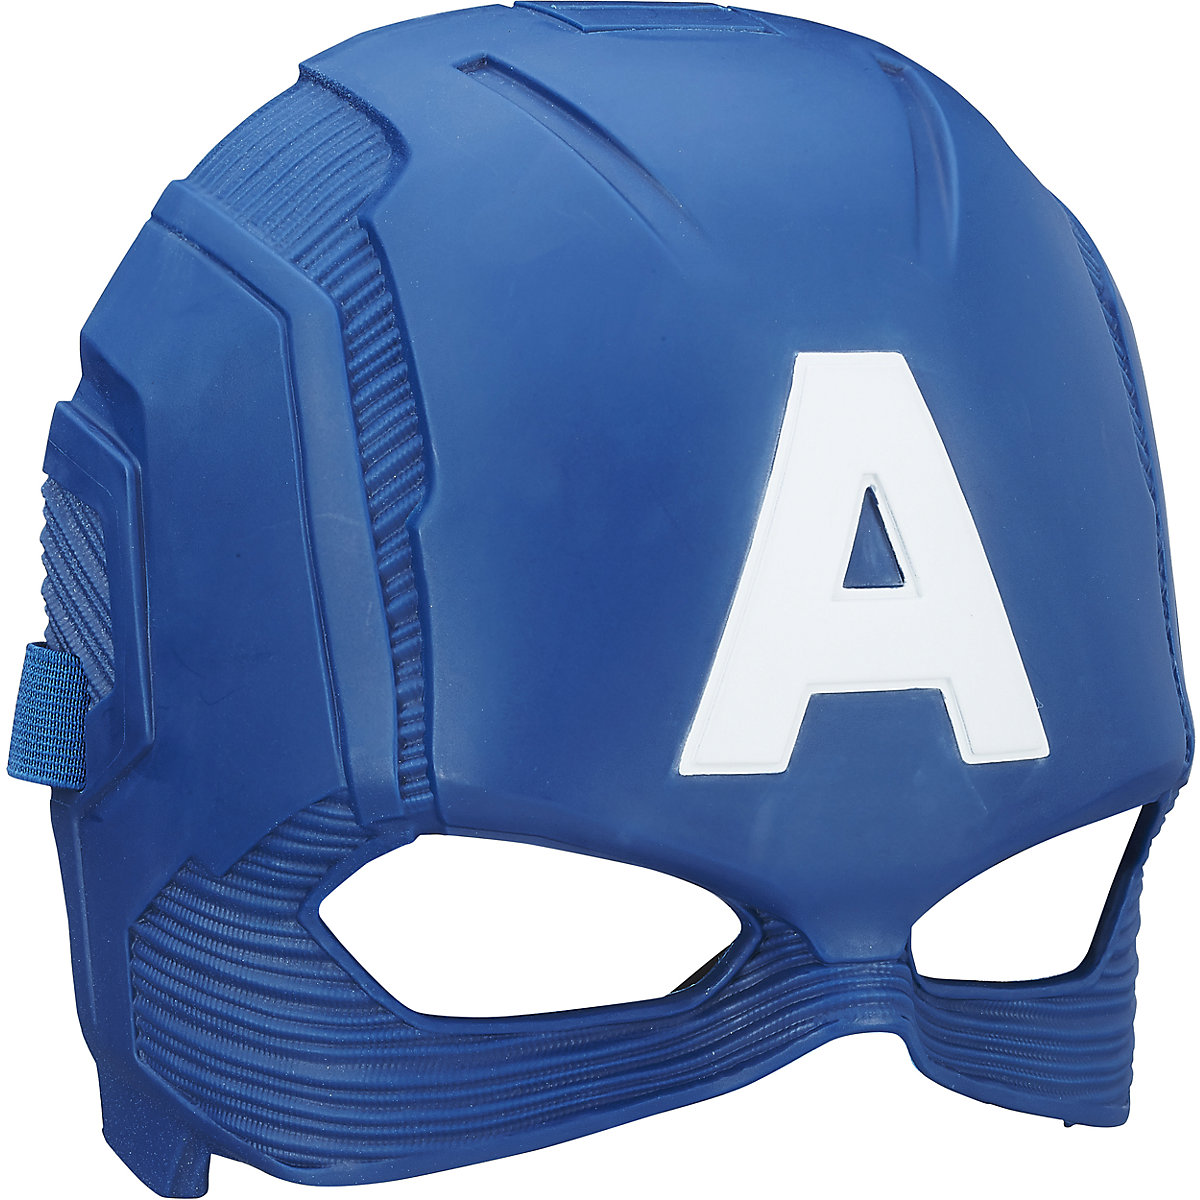 Hasbro Mask 5064750 Playsets Interactive Masks Aprilpromo Avengers Marvel Captain America MTpromo